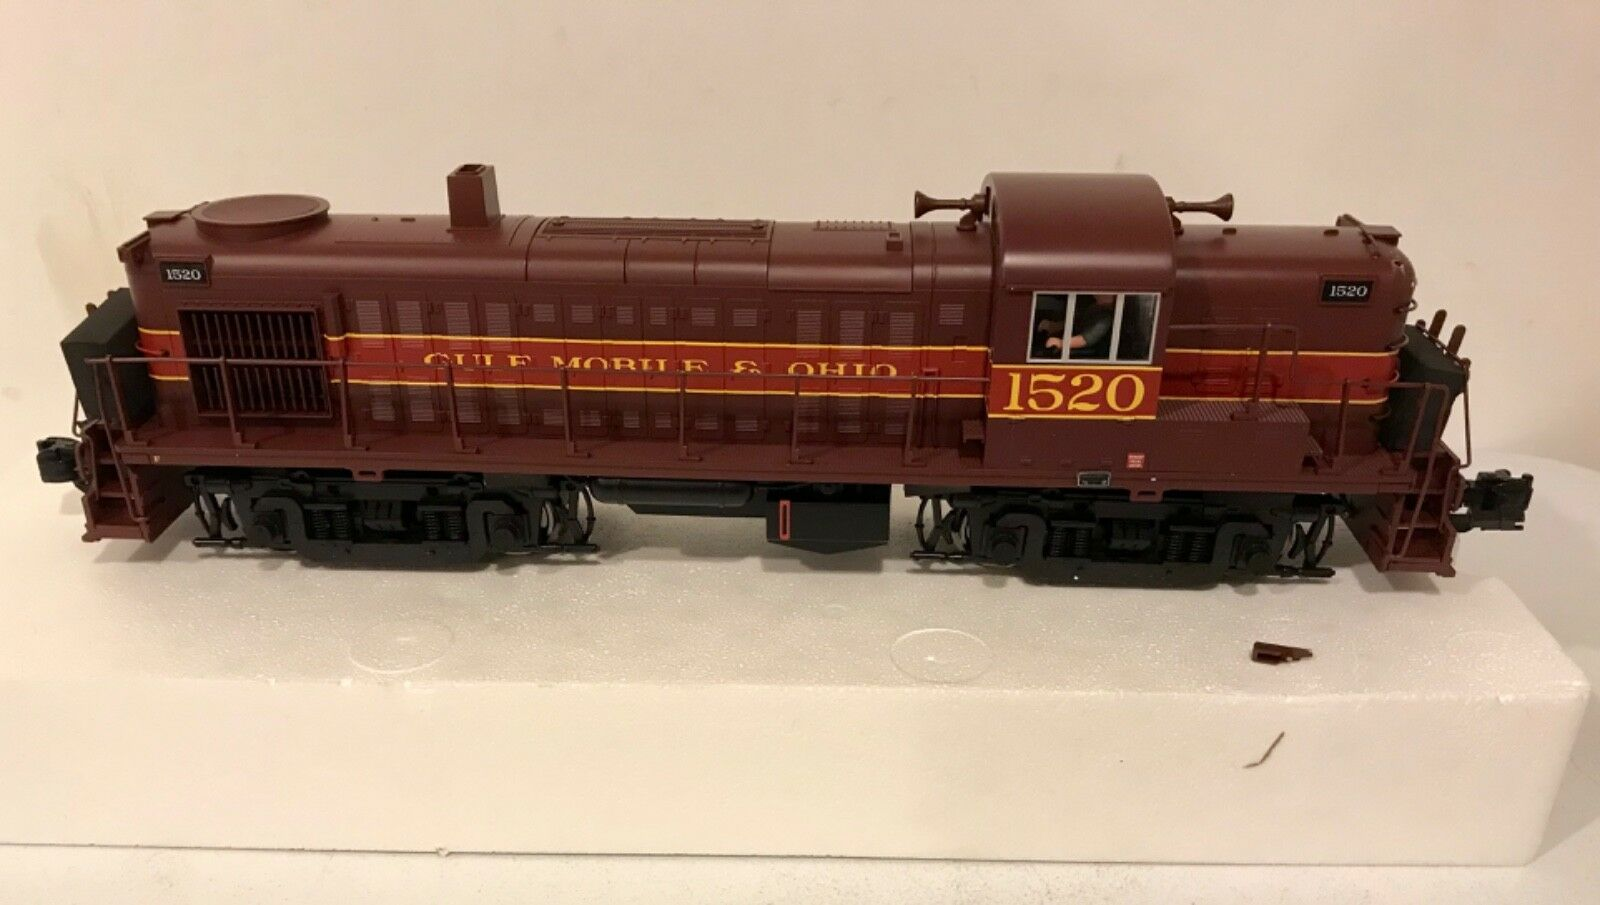 Aristocraft ART-22217-CB-2 Gulf Mobile & Ohio Diesel Locomotive ALCO RS-3